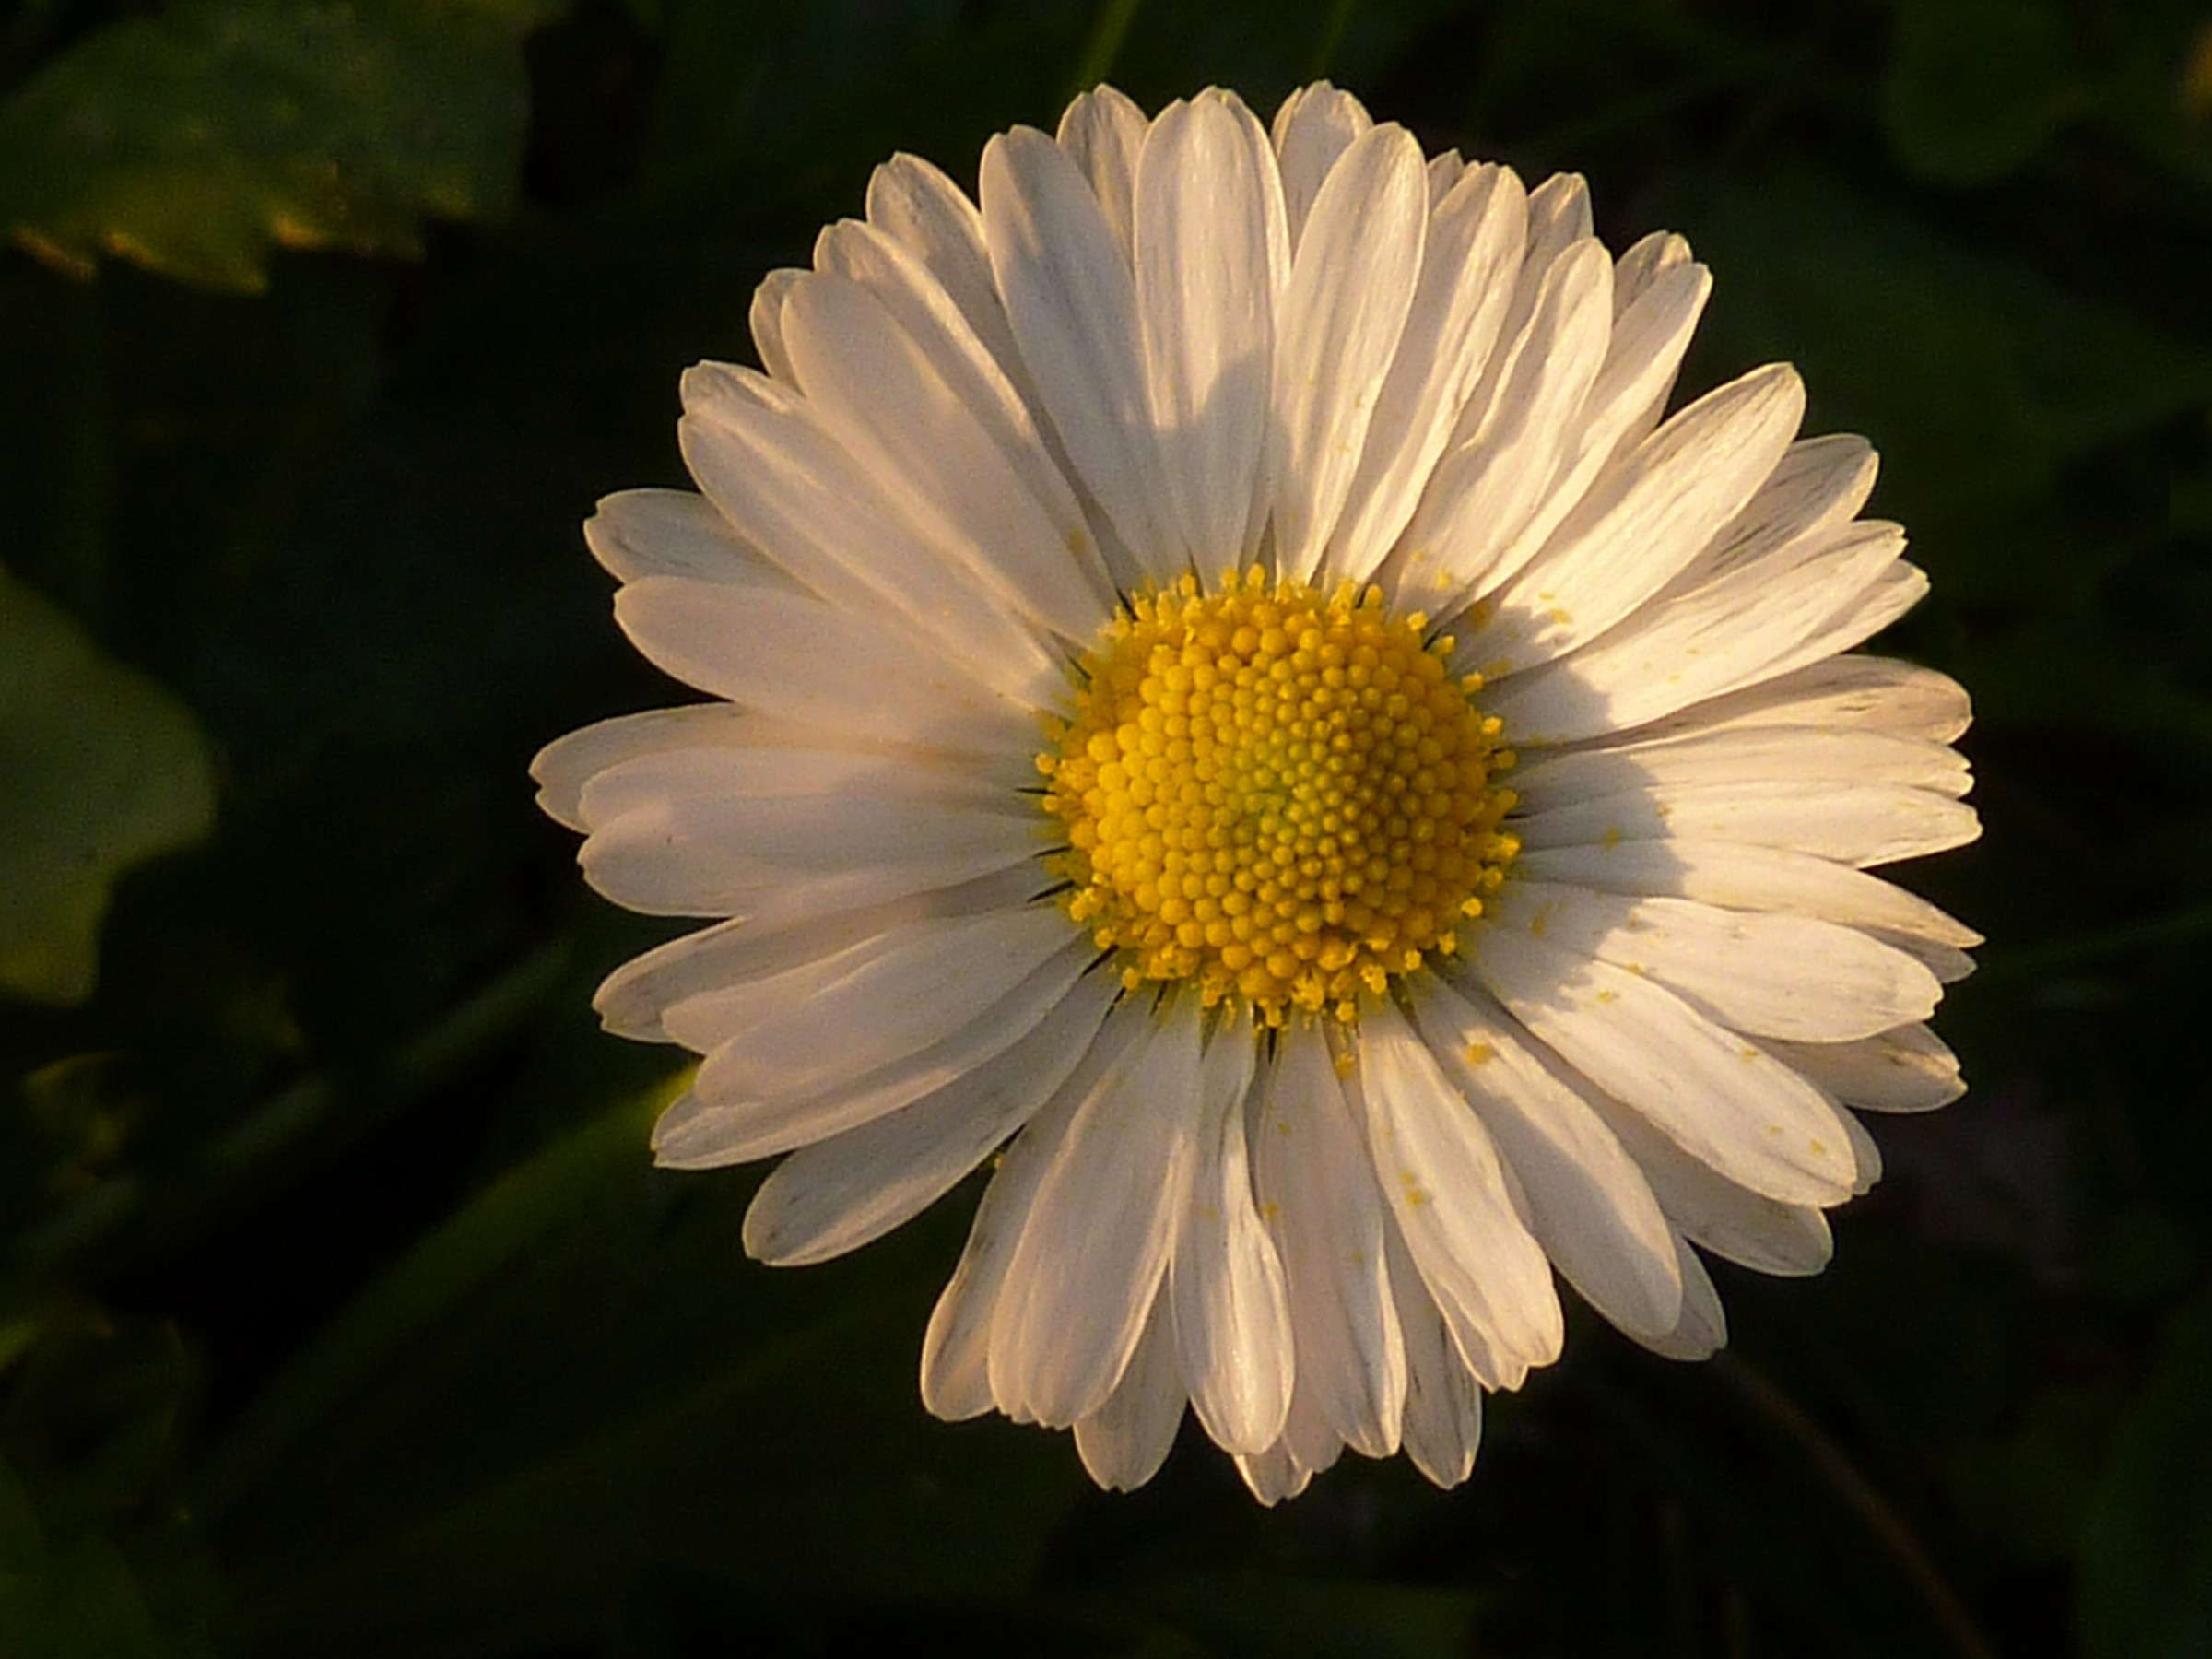 The smile of the daisy...